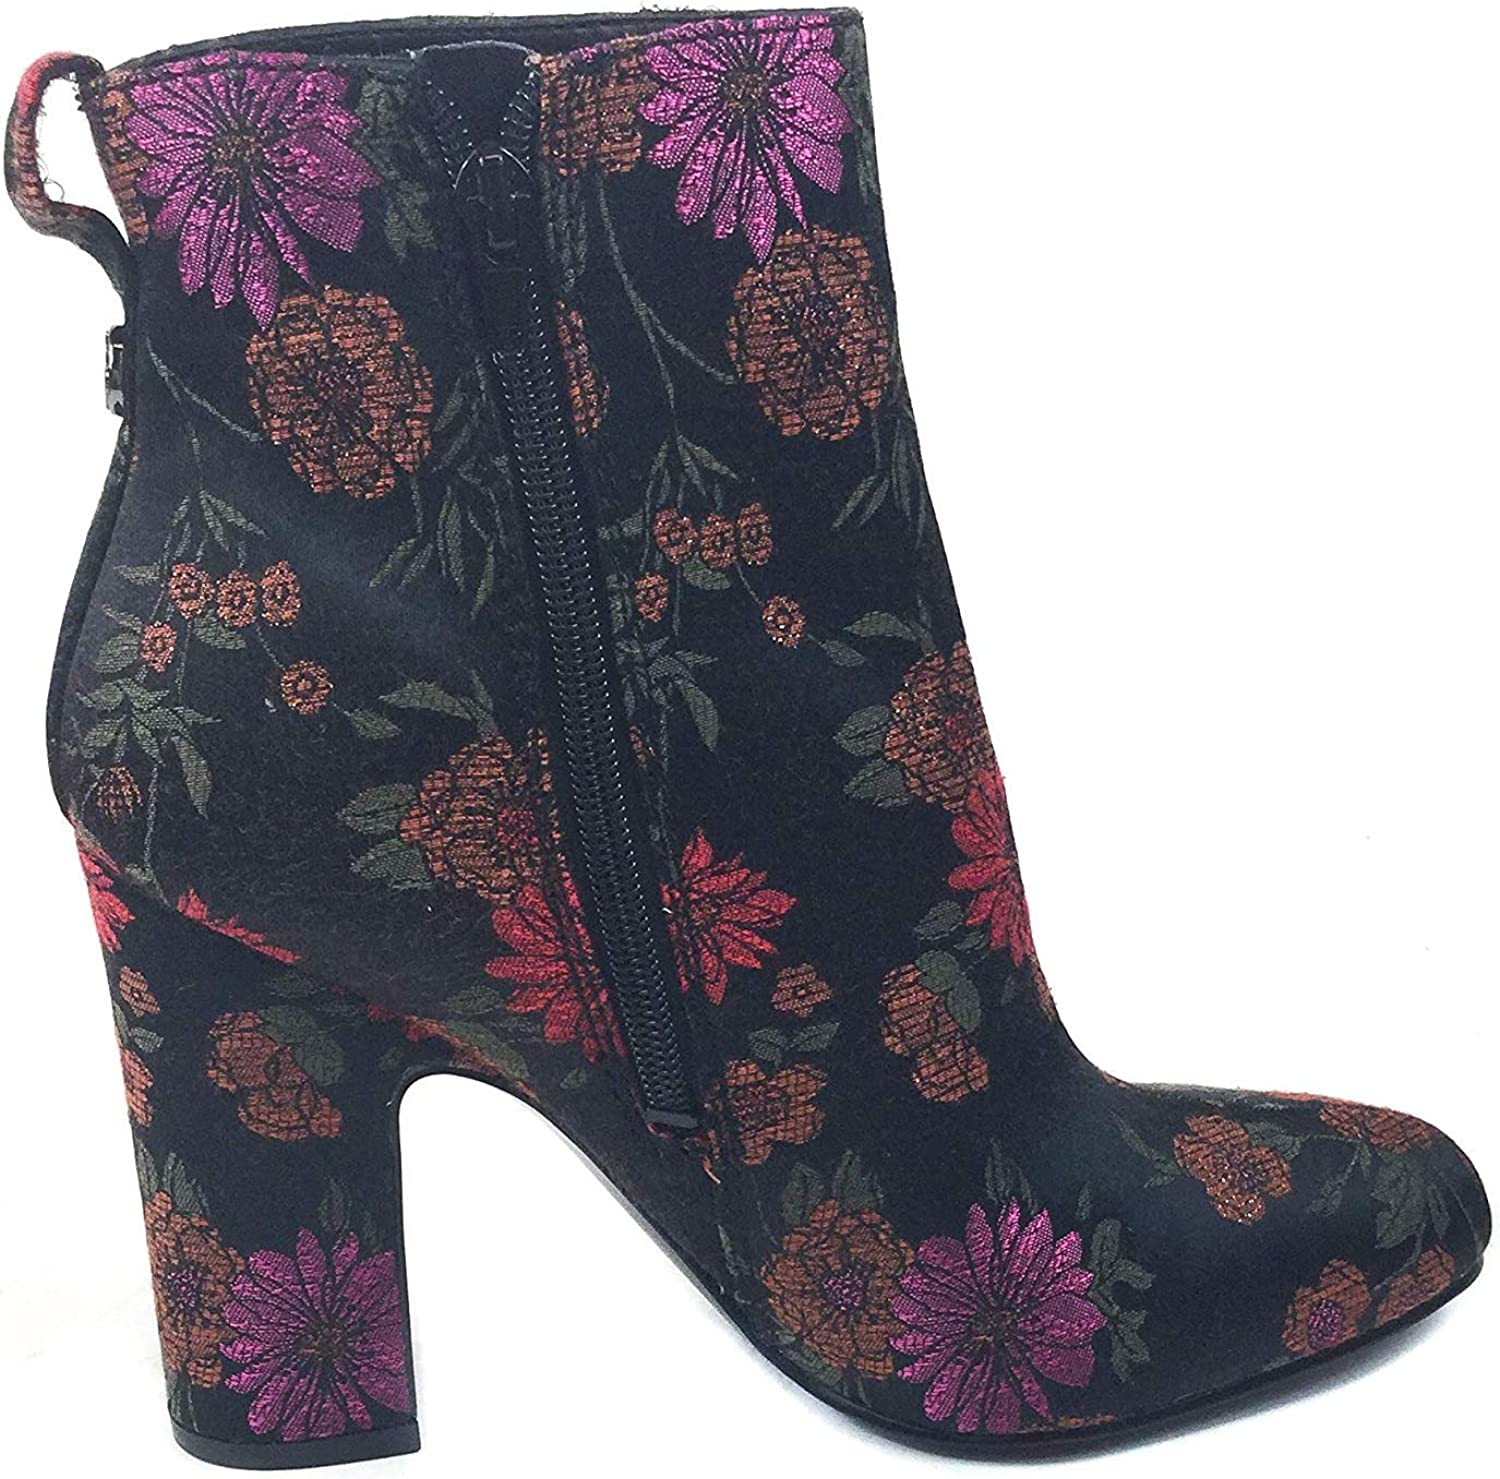 GUESS Womens Nasia3 Closed Toe Ankle Fashion Boots